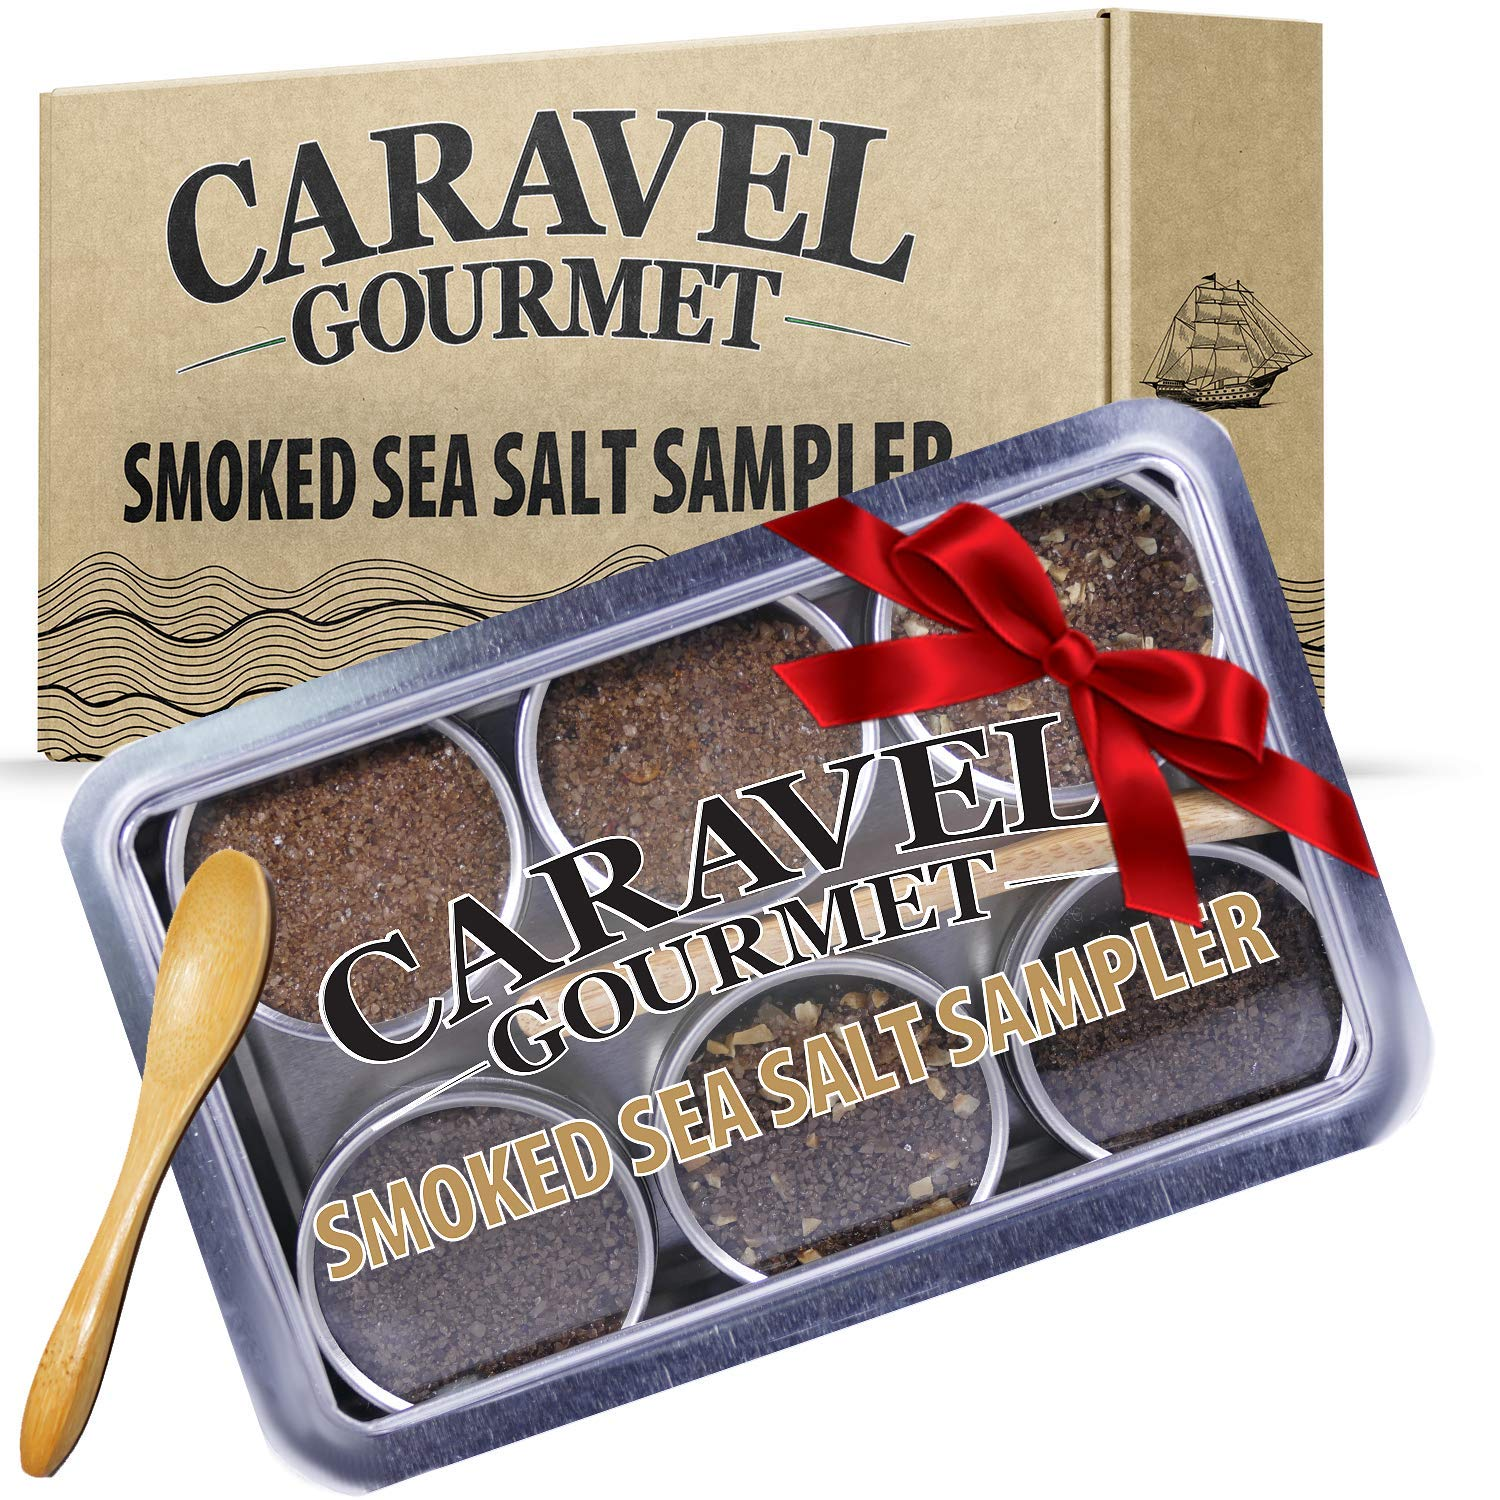 The Smoked Sea Salt Sampler Set - 6 Varieties in Reusable Tins with Bamboo Spoon: Naturally Smoked Bacon, Bacon Chipotle, Onion and Garlic, Alderwood, Garlic and Cherrywood - 1/2 oz each